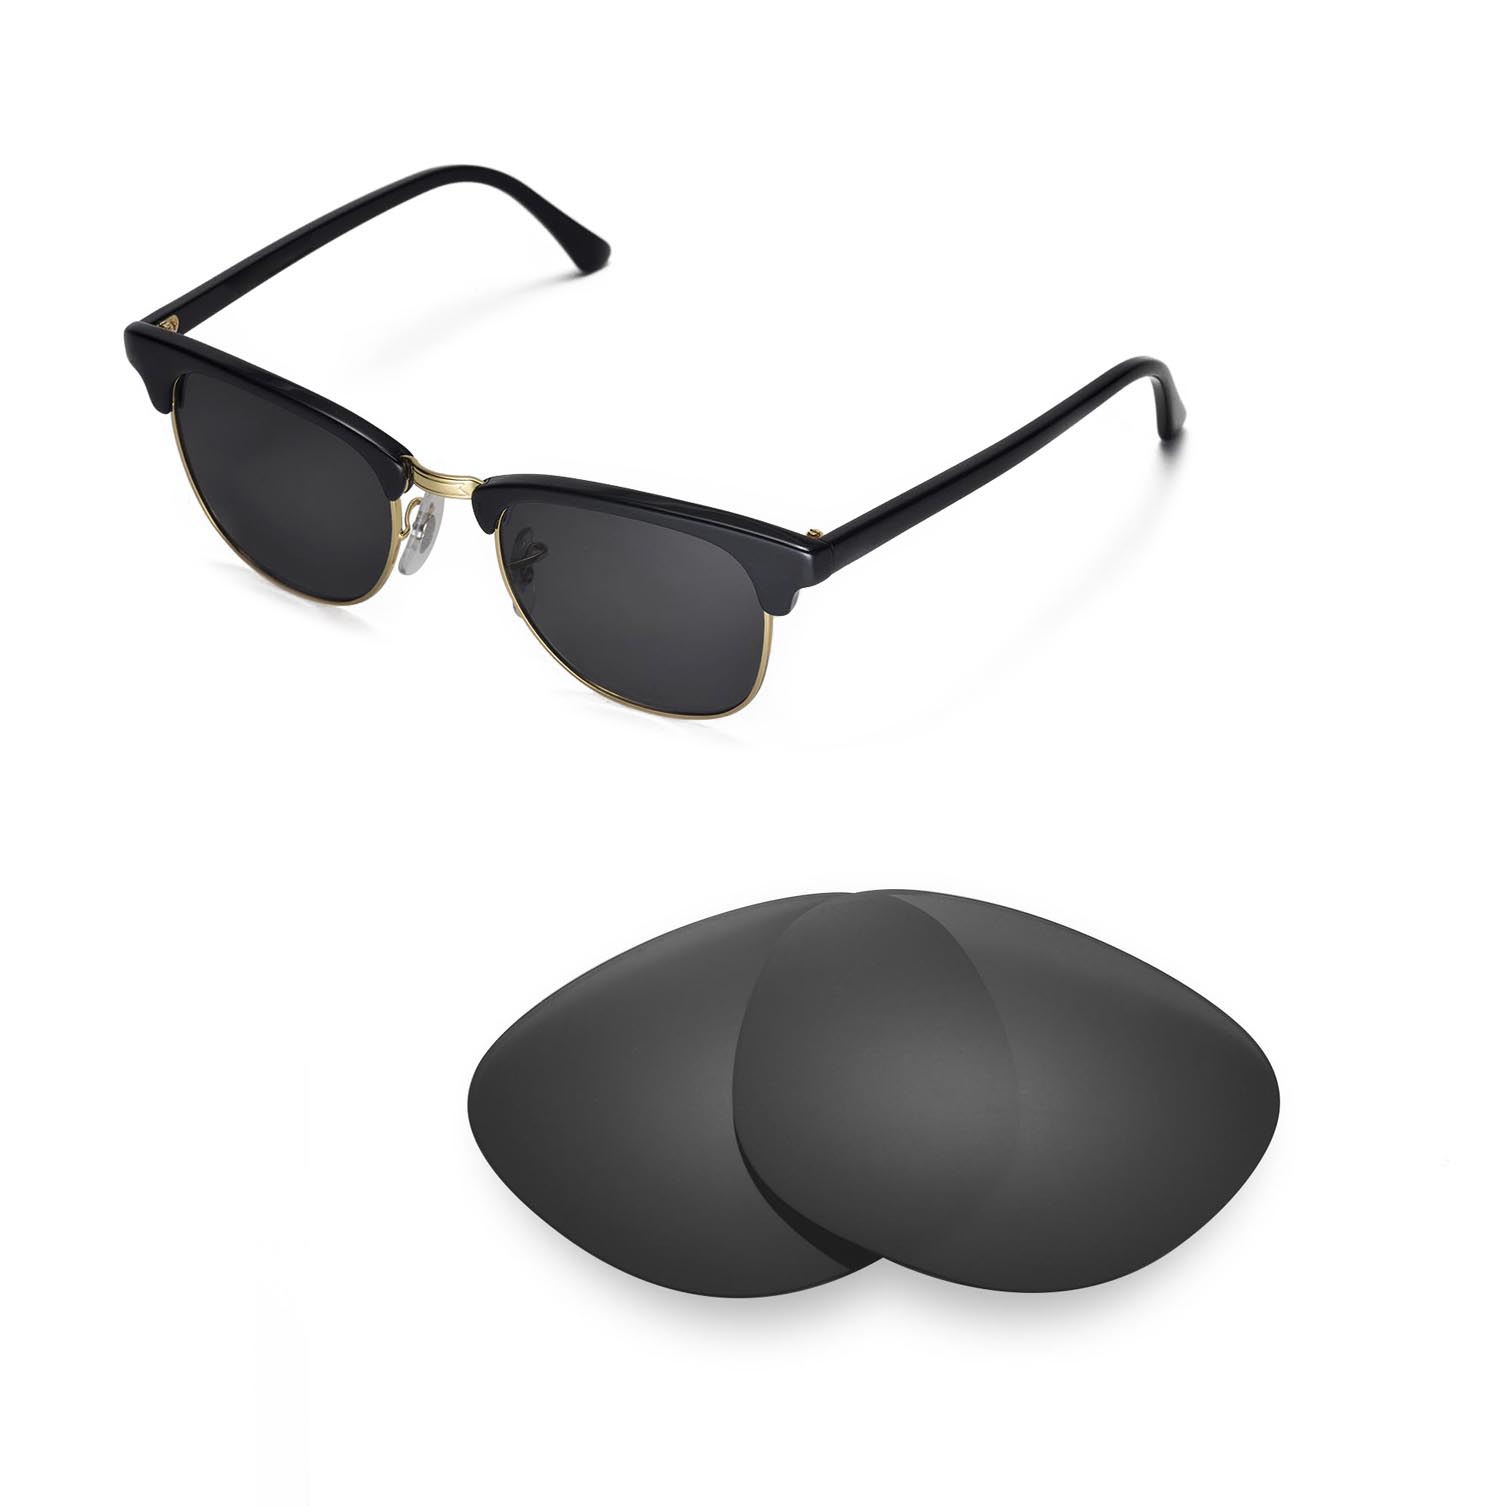 8b0055e048 Details about New Walleva Polarized Black Lenses For Ray-Ban Clubmaster  RB3016 49mm Sunglasses